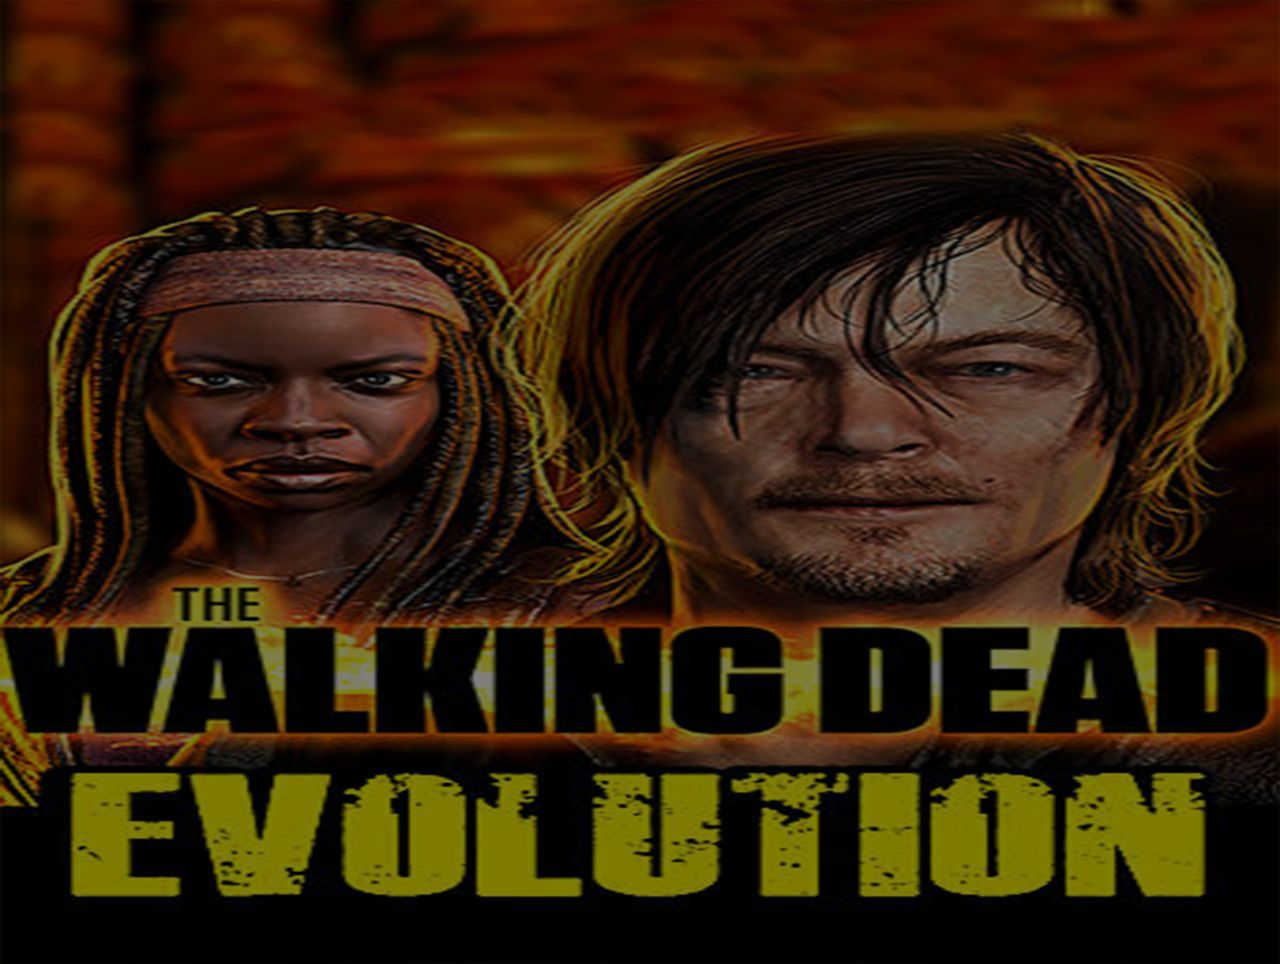 The Walking Dead Evolution Hack 2020 - Online Cheat For Unlimited Resources